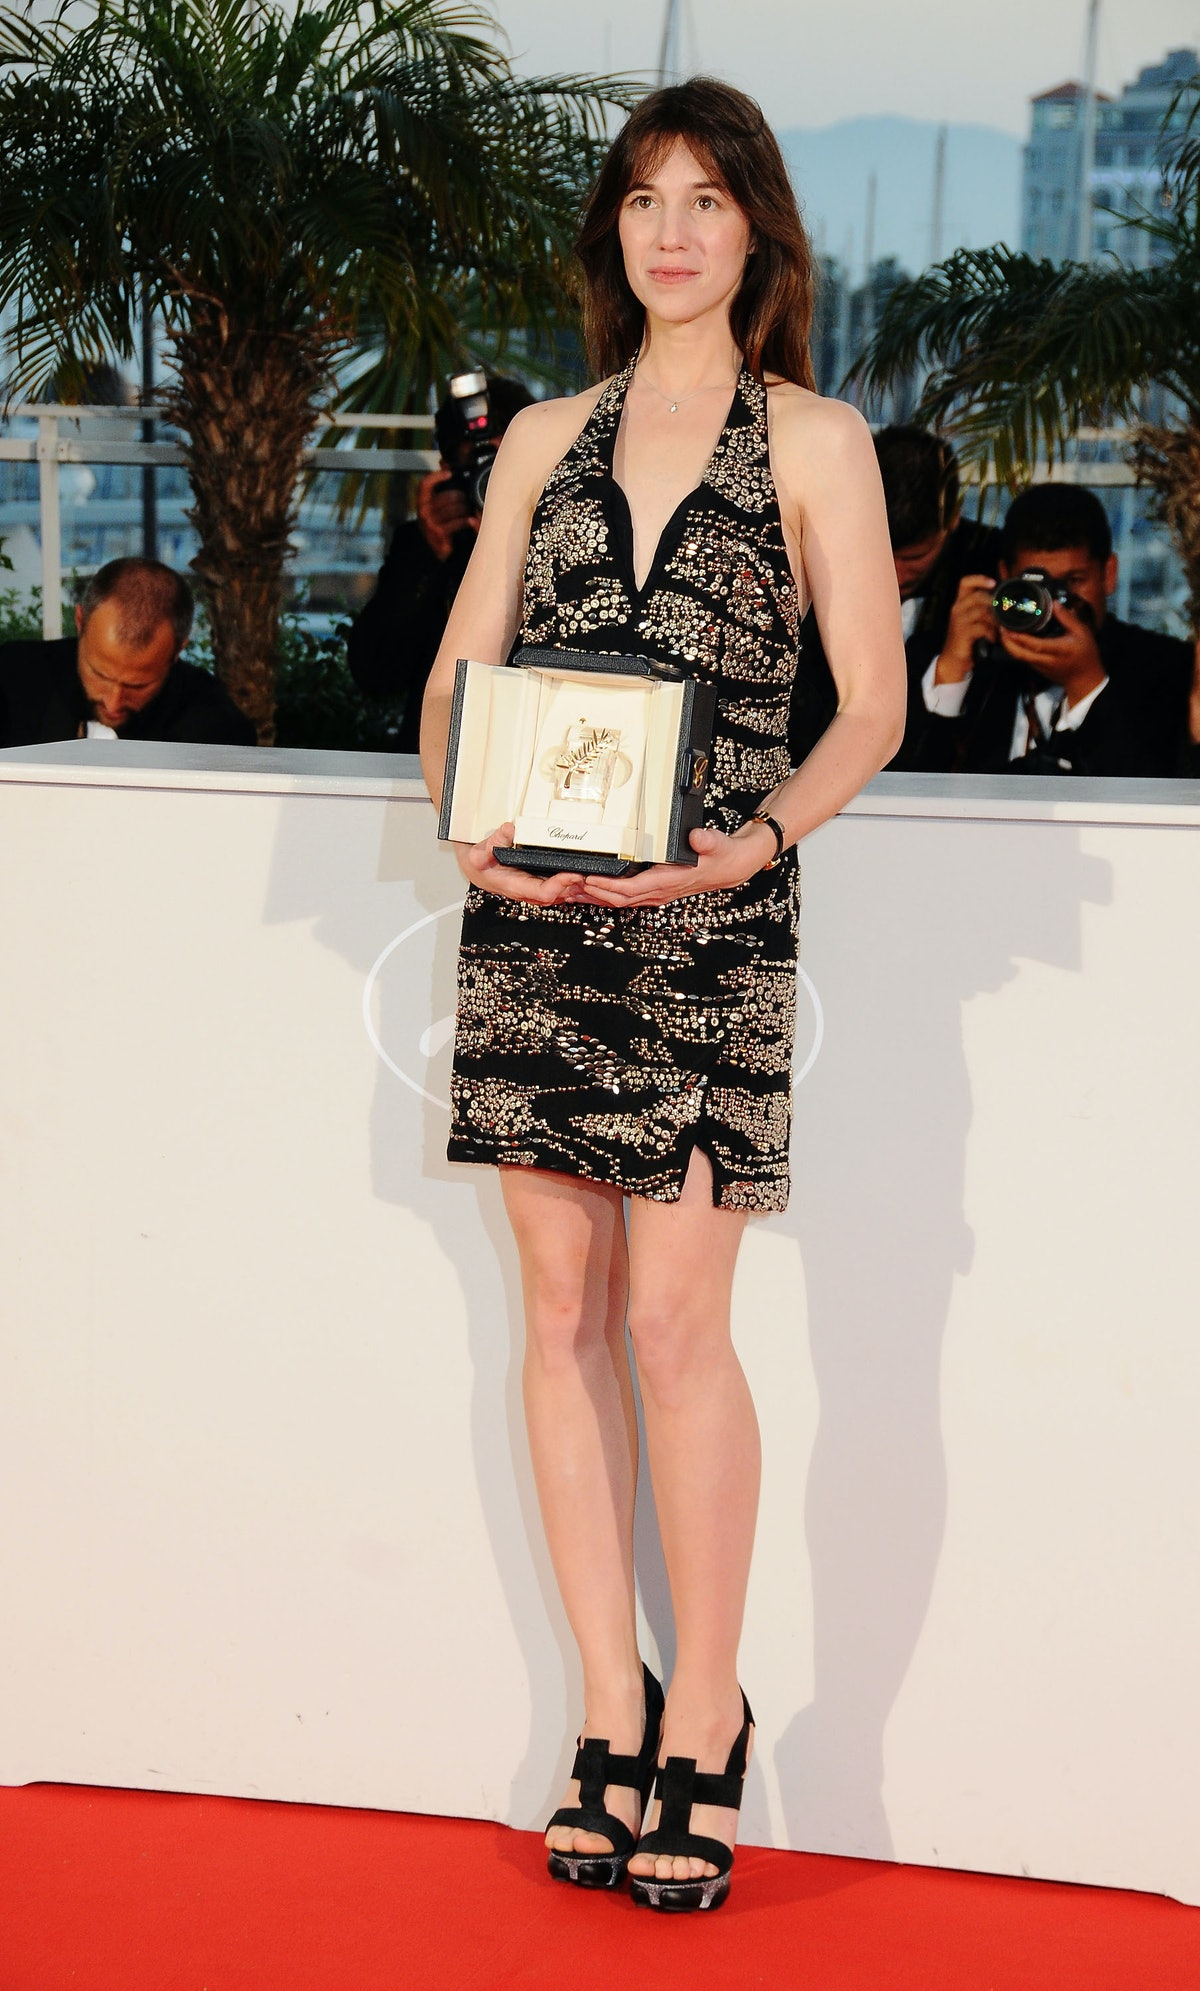 Palm d'Or Award Ceremony - Photocall - 2009 Cannes Film Festival